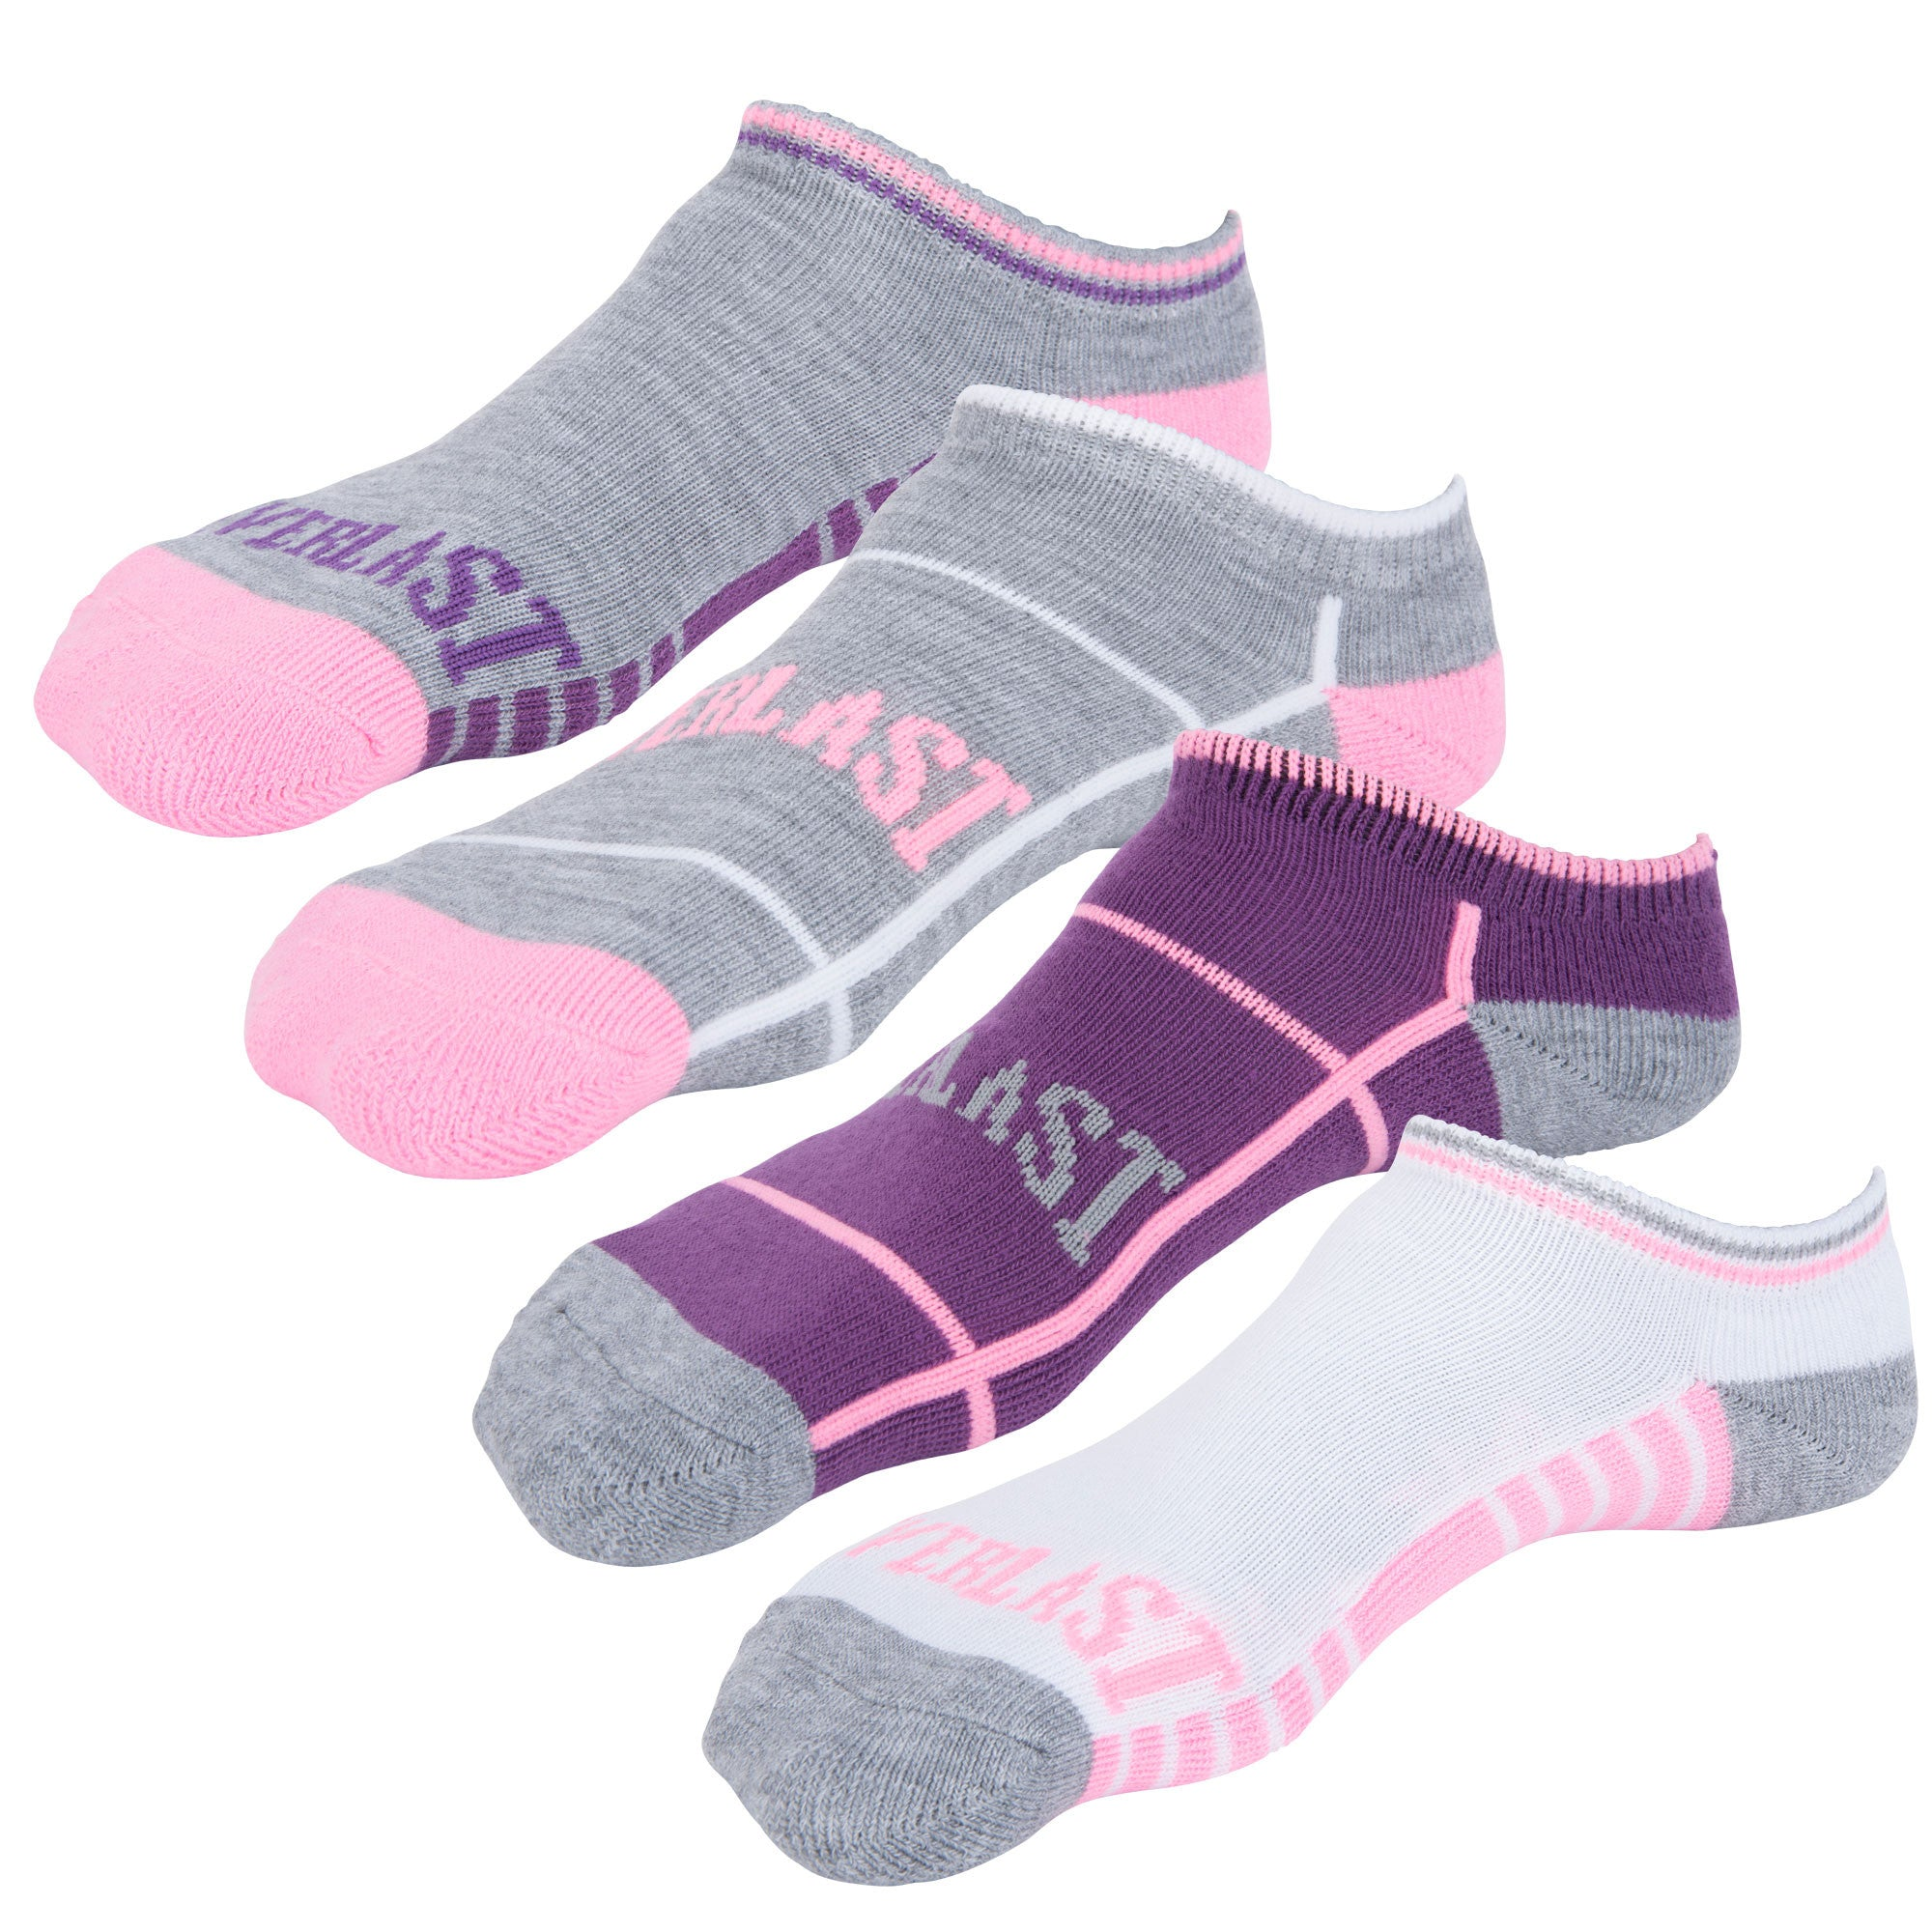 Everlast Girls No Show Socks - 4 Pack